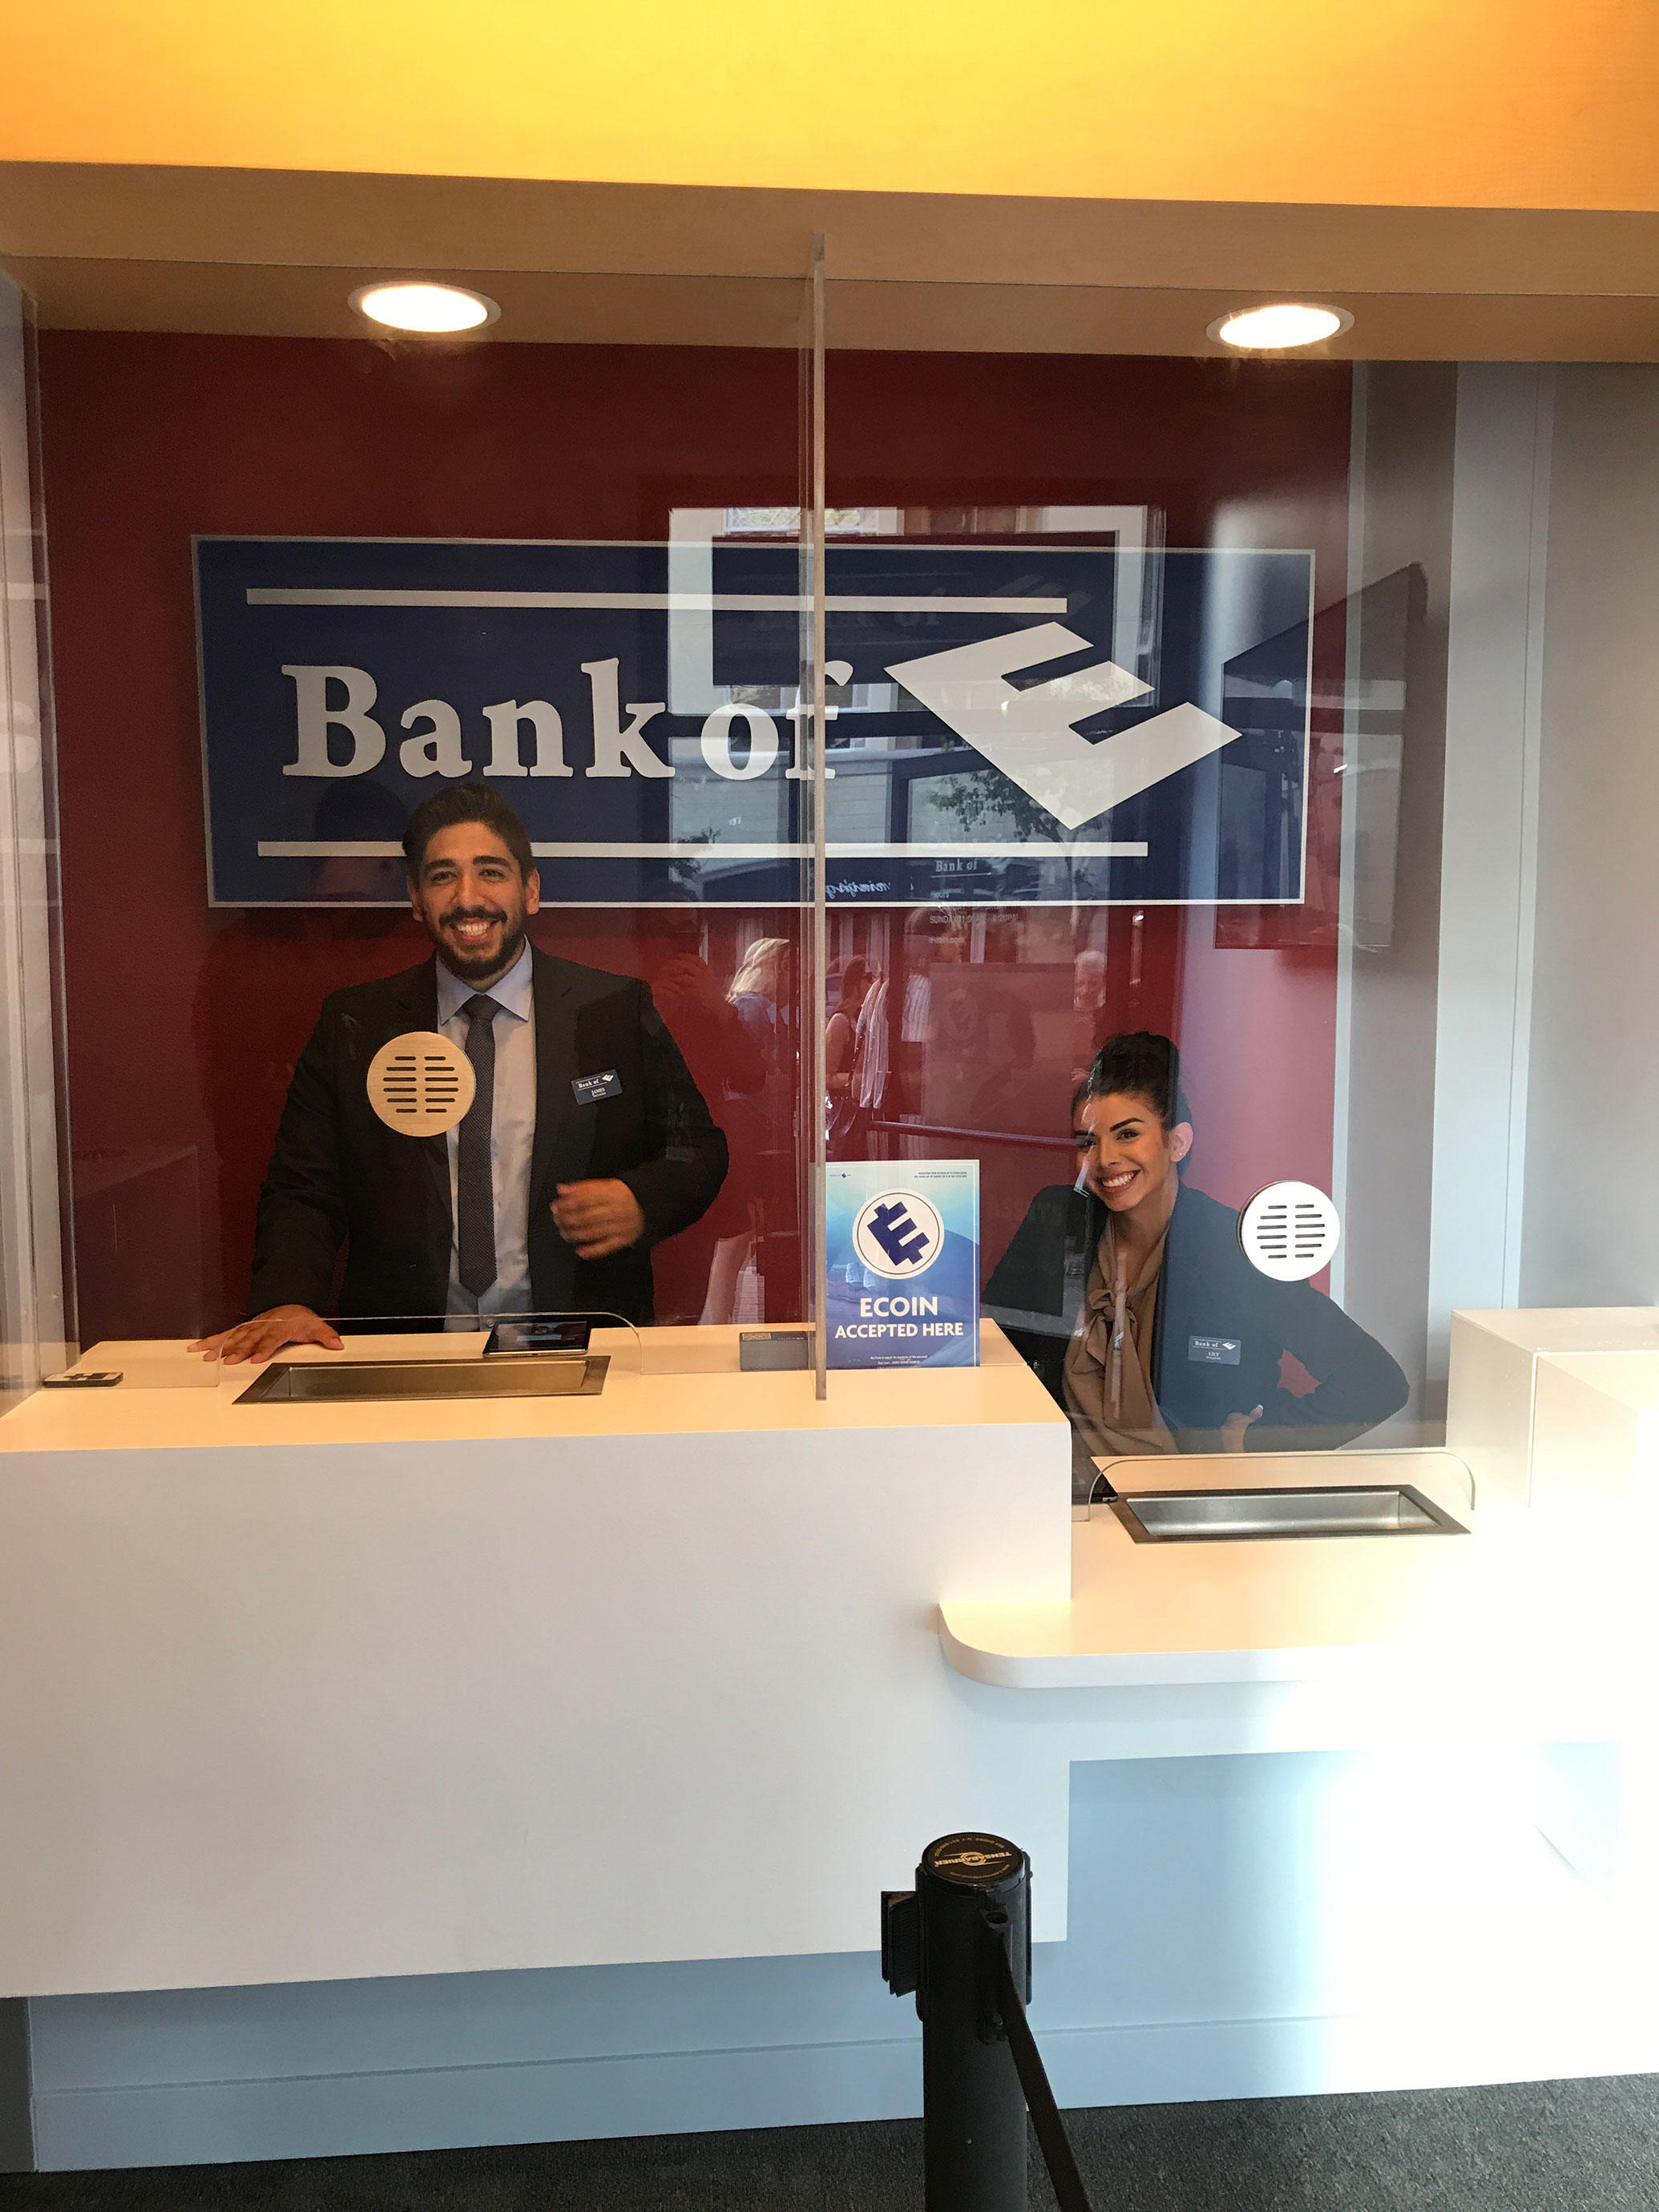 indie-music-and-television-blog-mr.-robot-bank-of-e